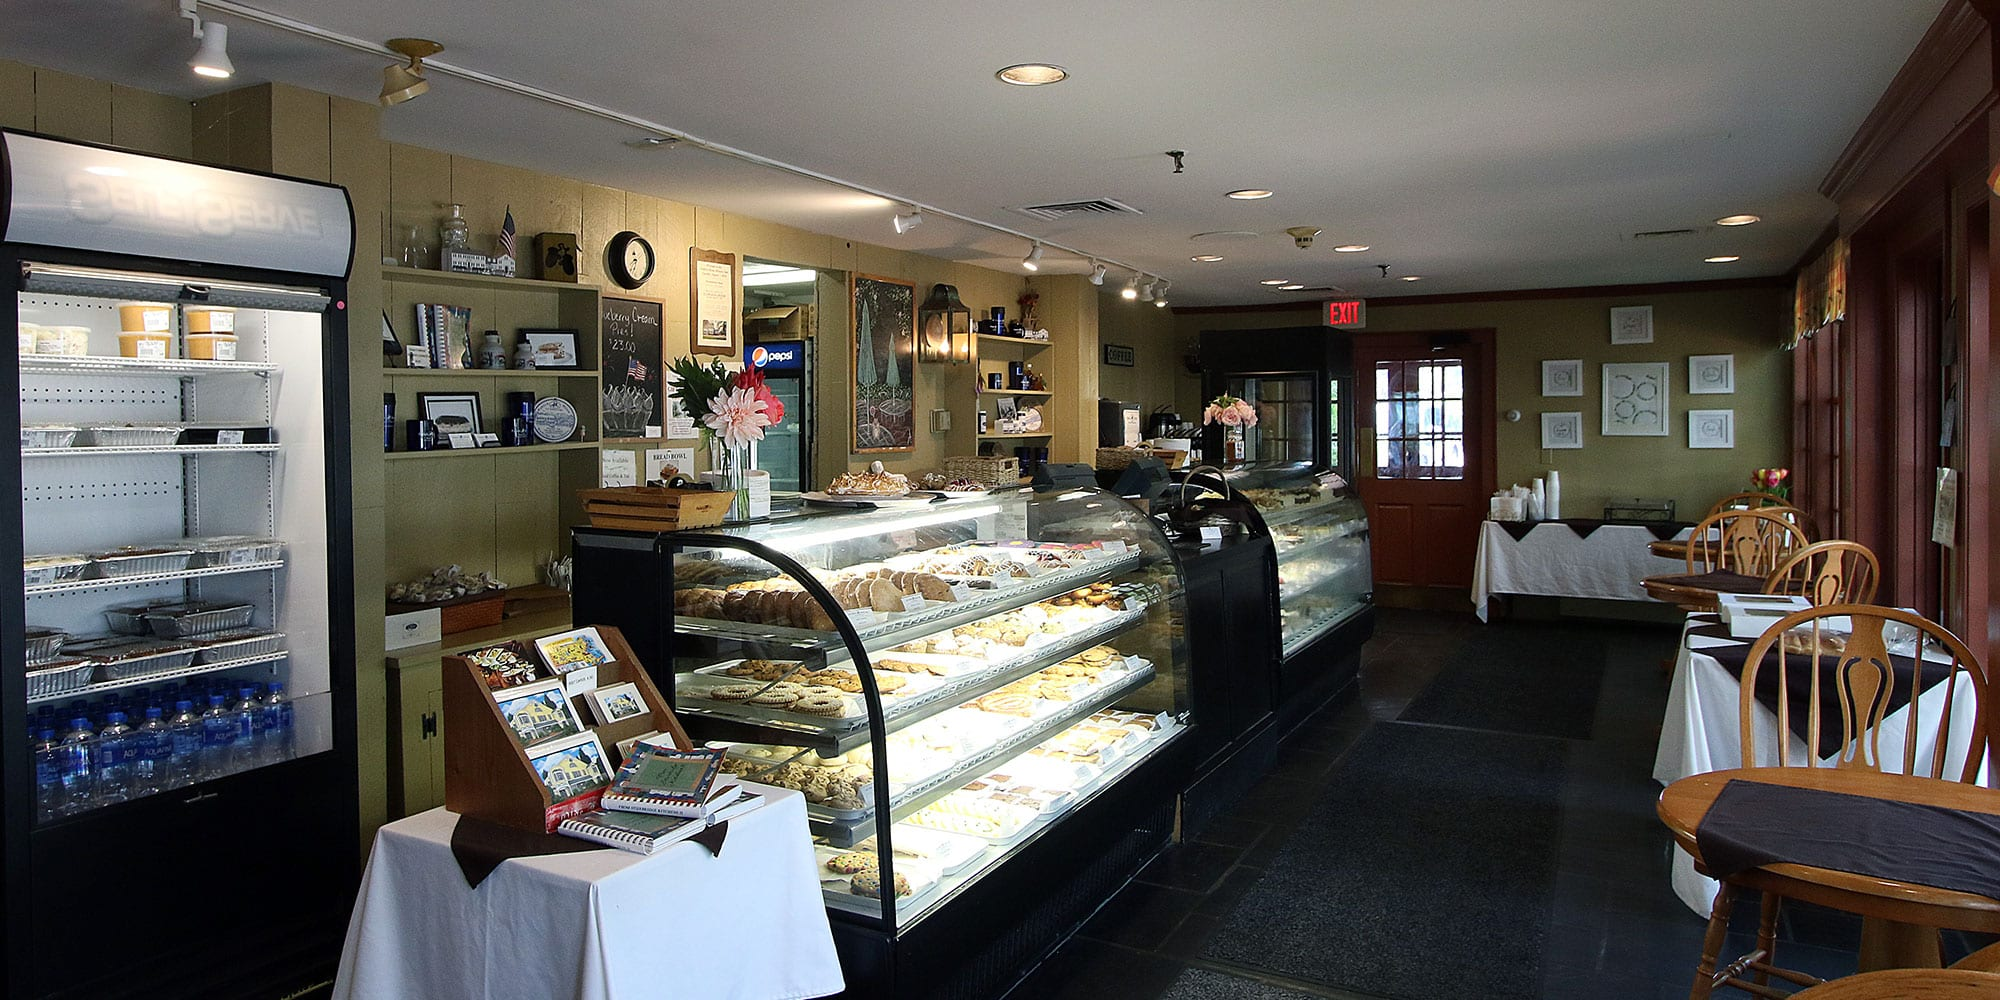 The Bake Shoppe   Start Your Morning Off Right At The